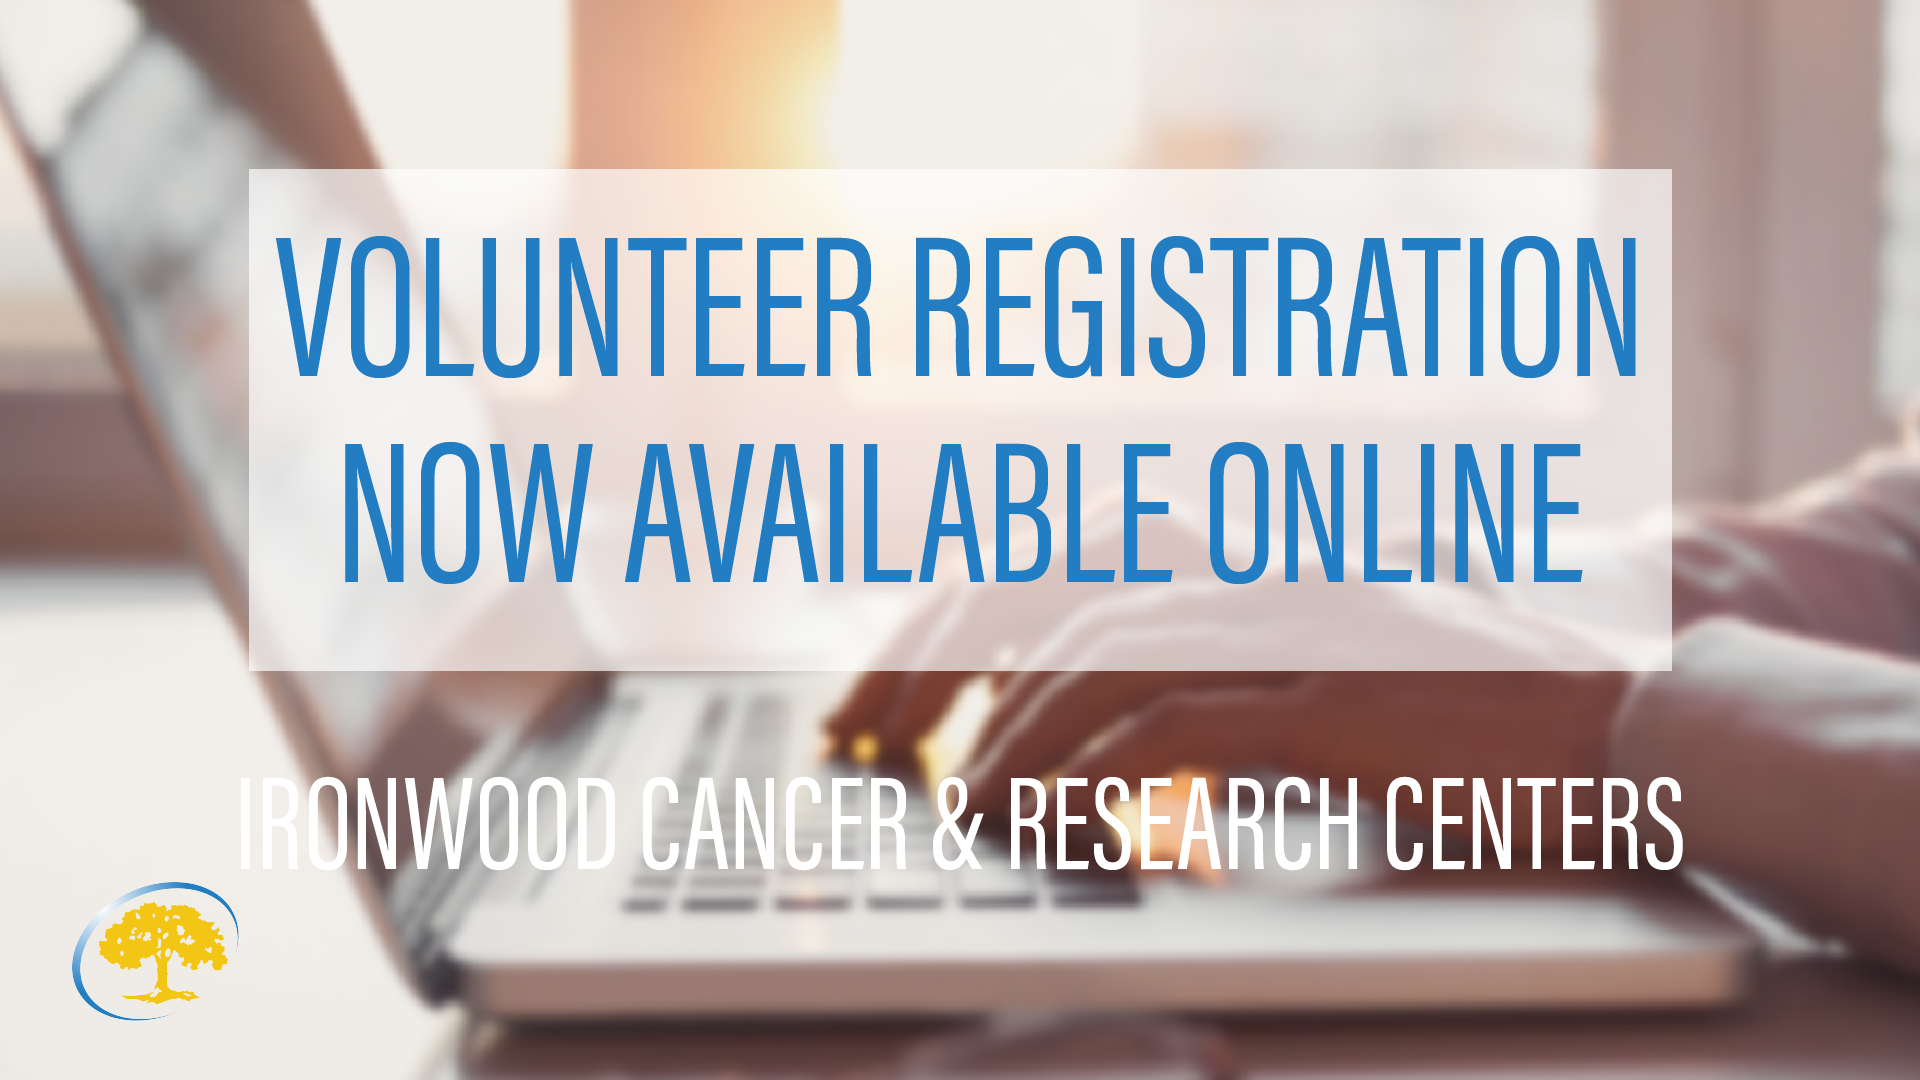 Volunteer Registration Now Available Online